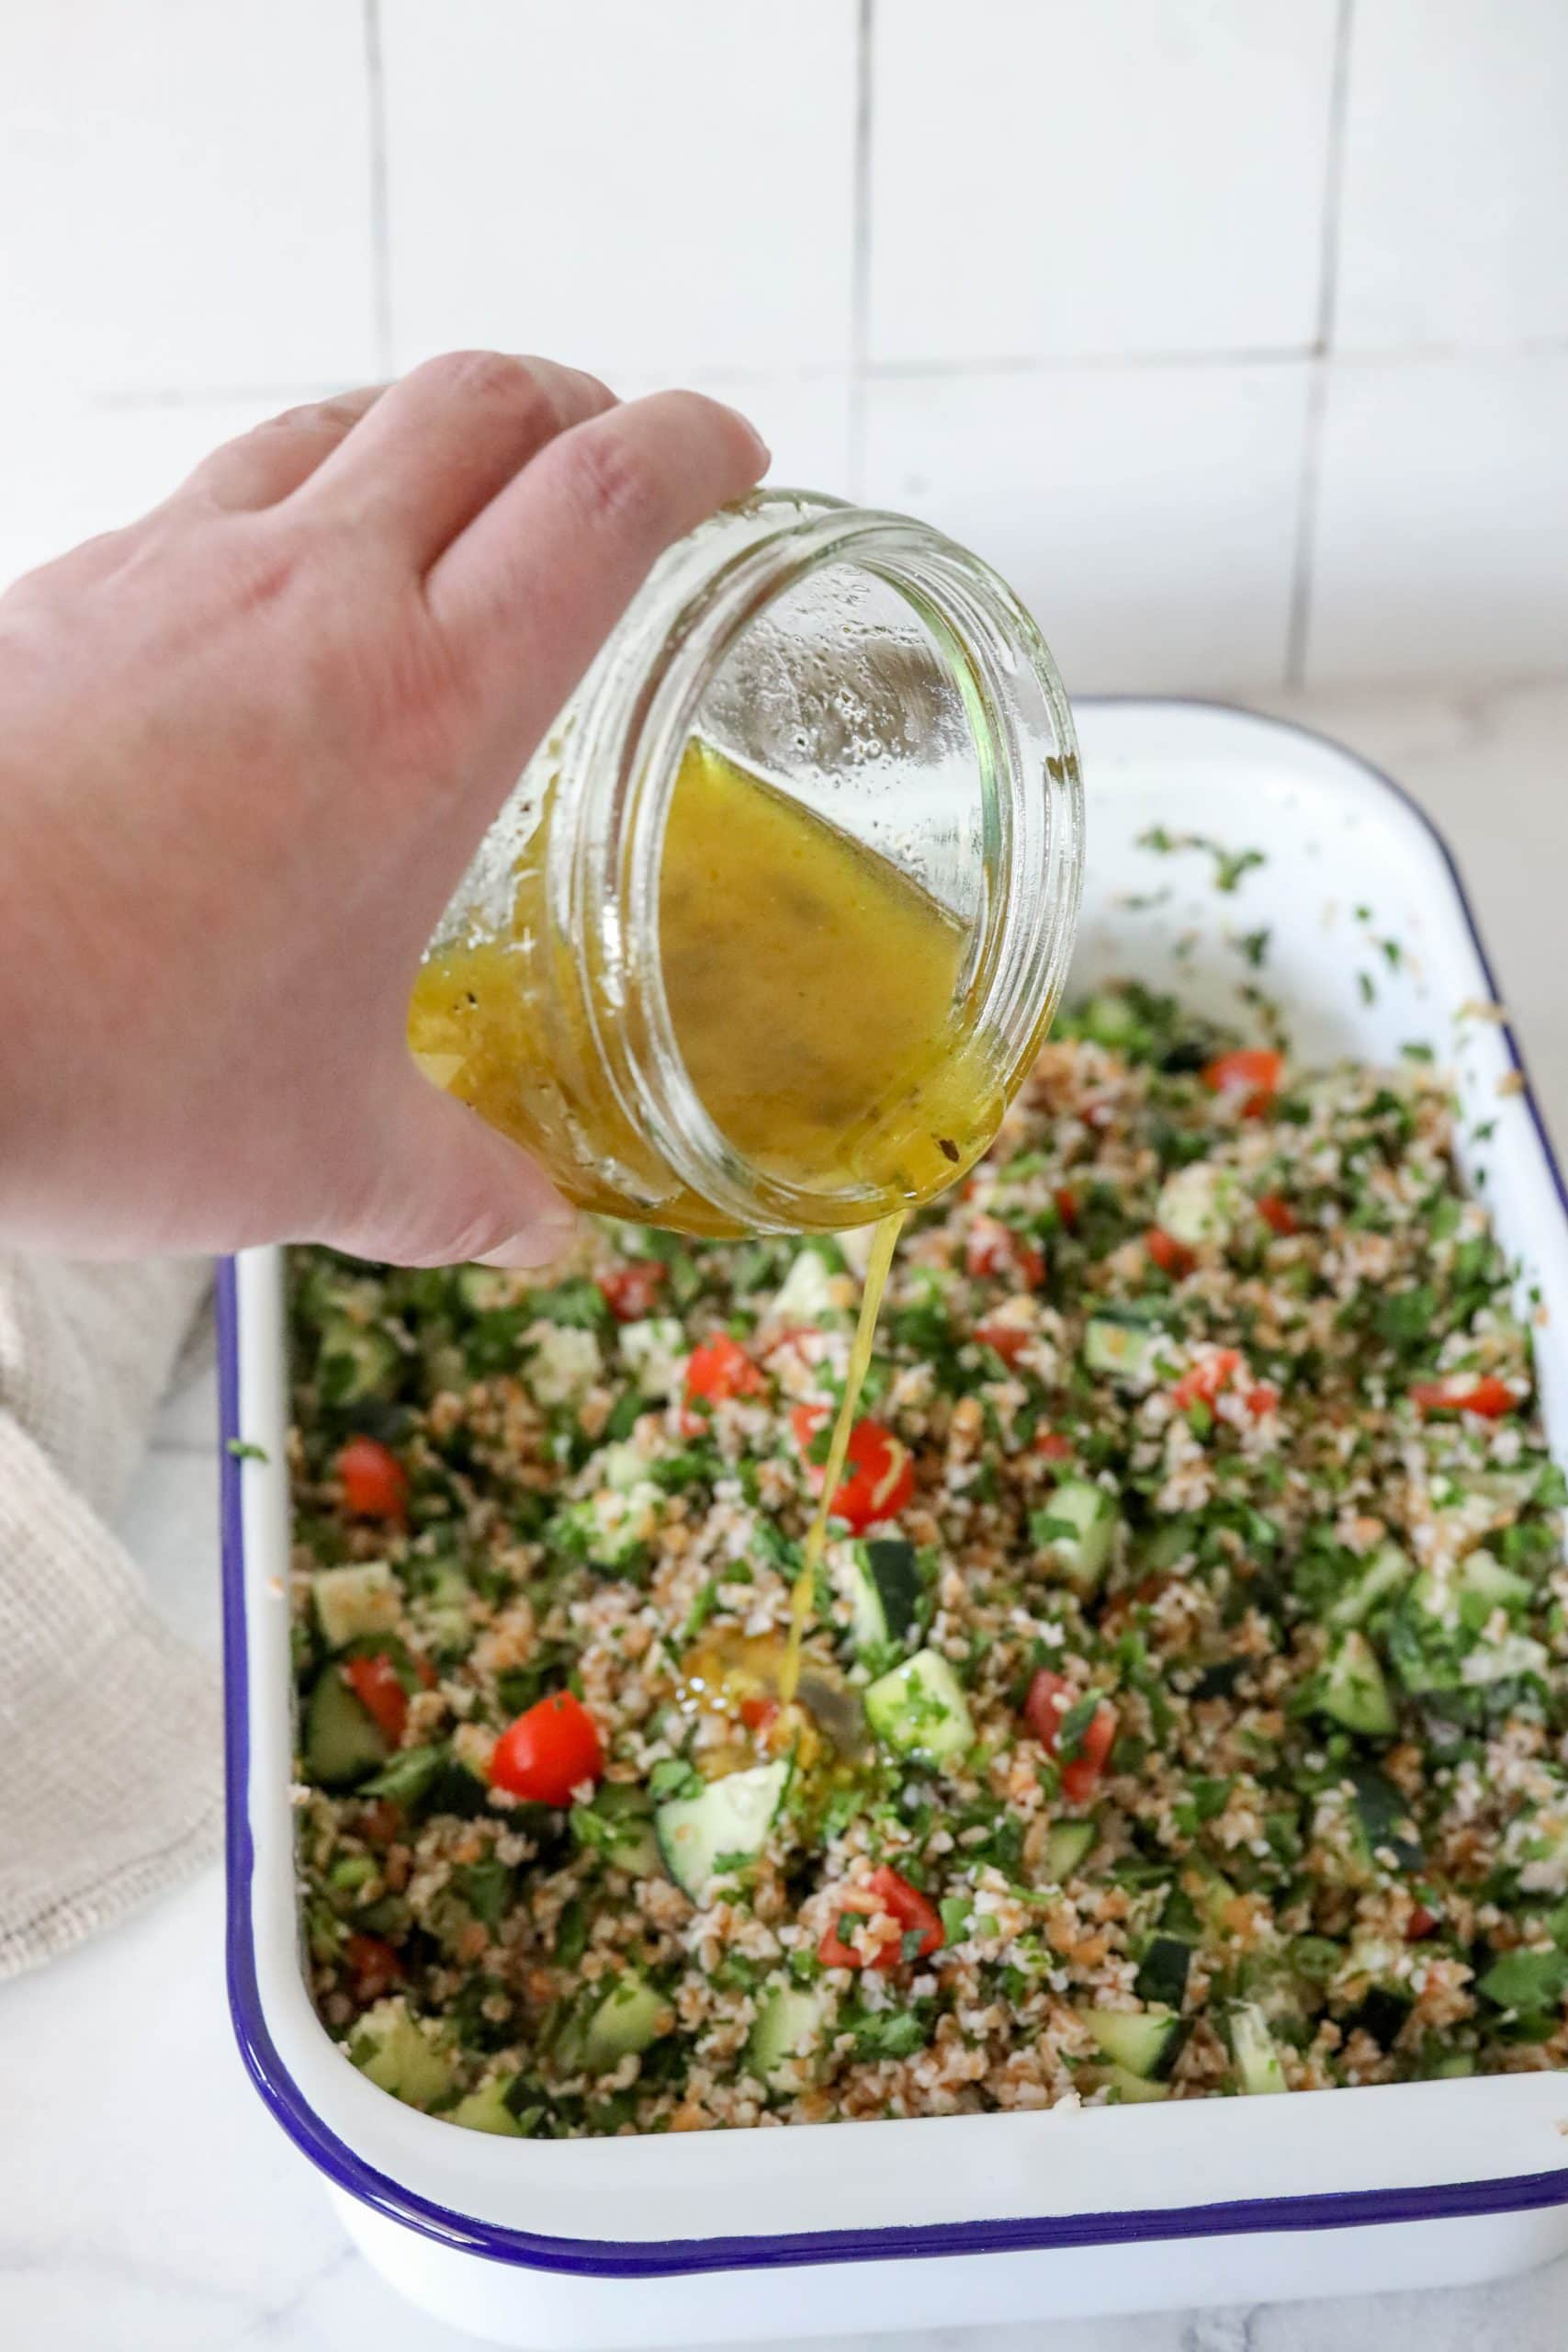 picture of hand pouring olive oil and juice over tabbouleh